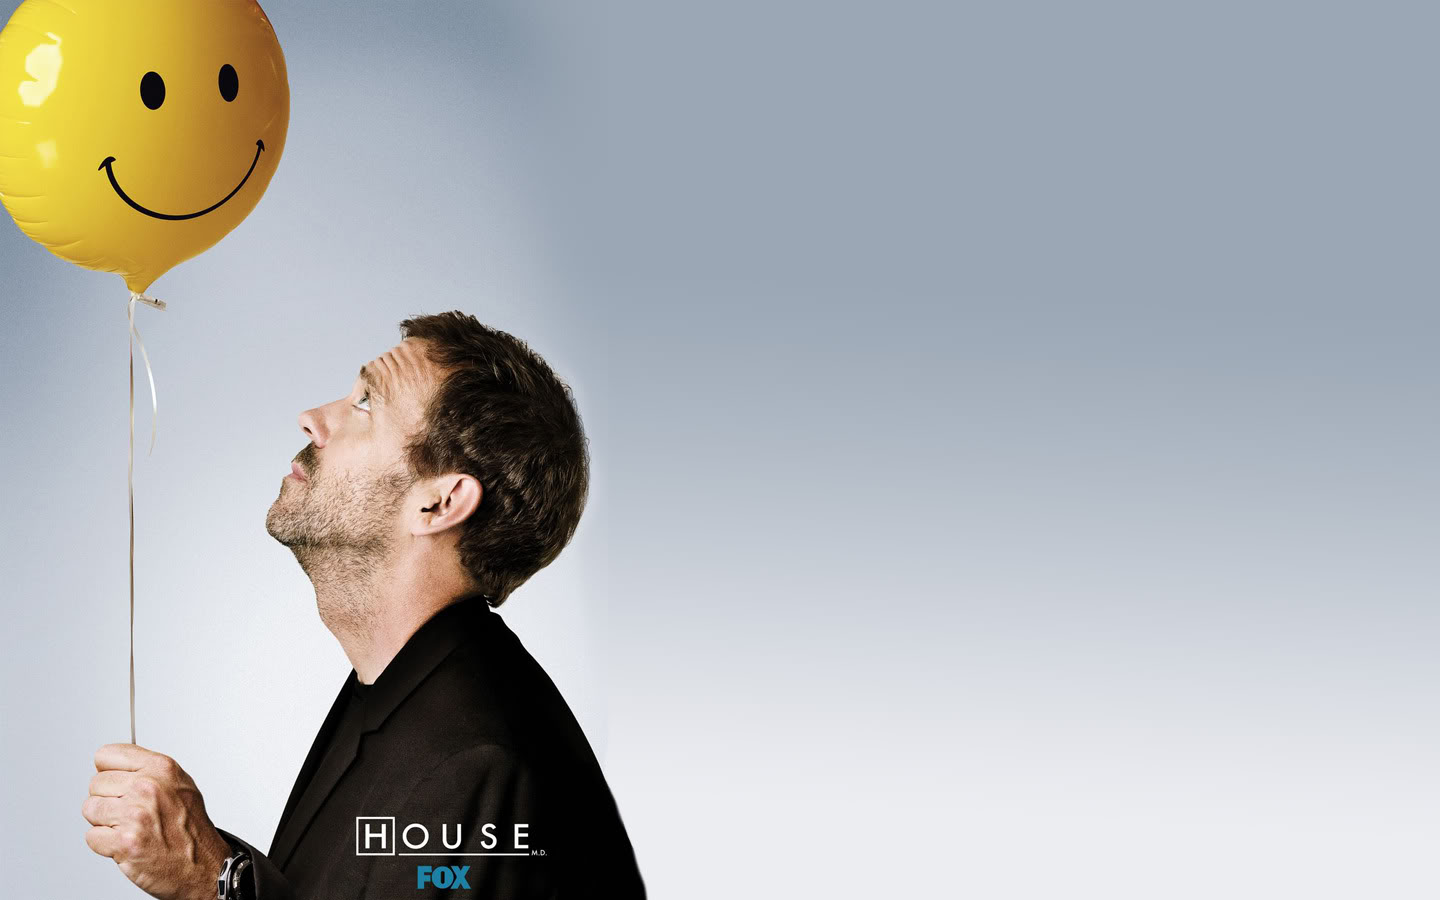 download wallpapers for house gallery